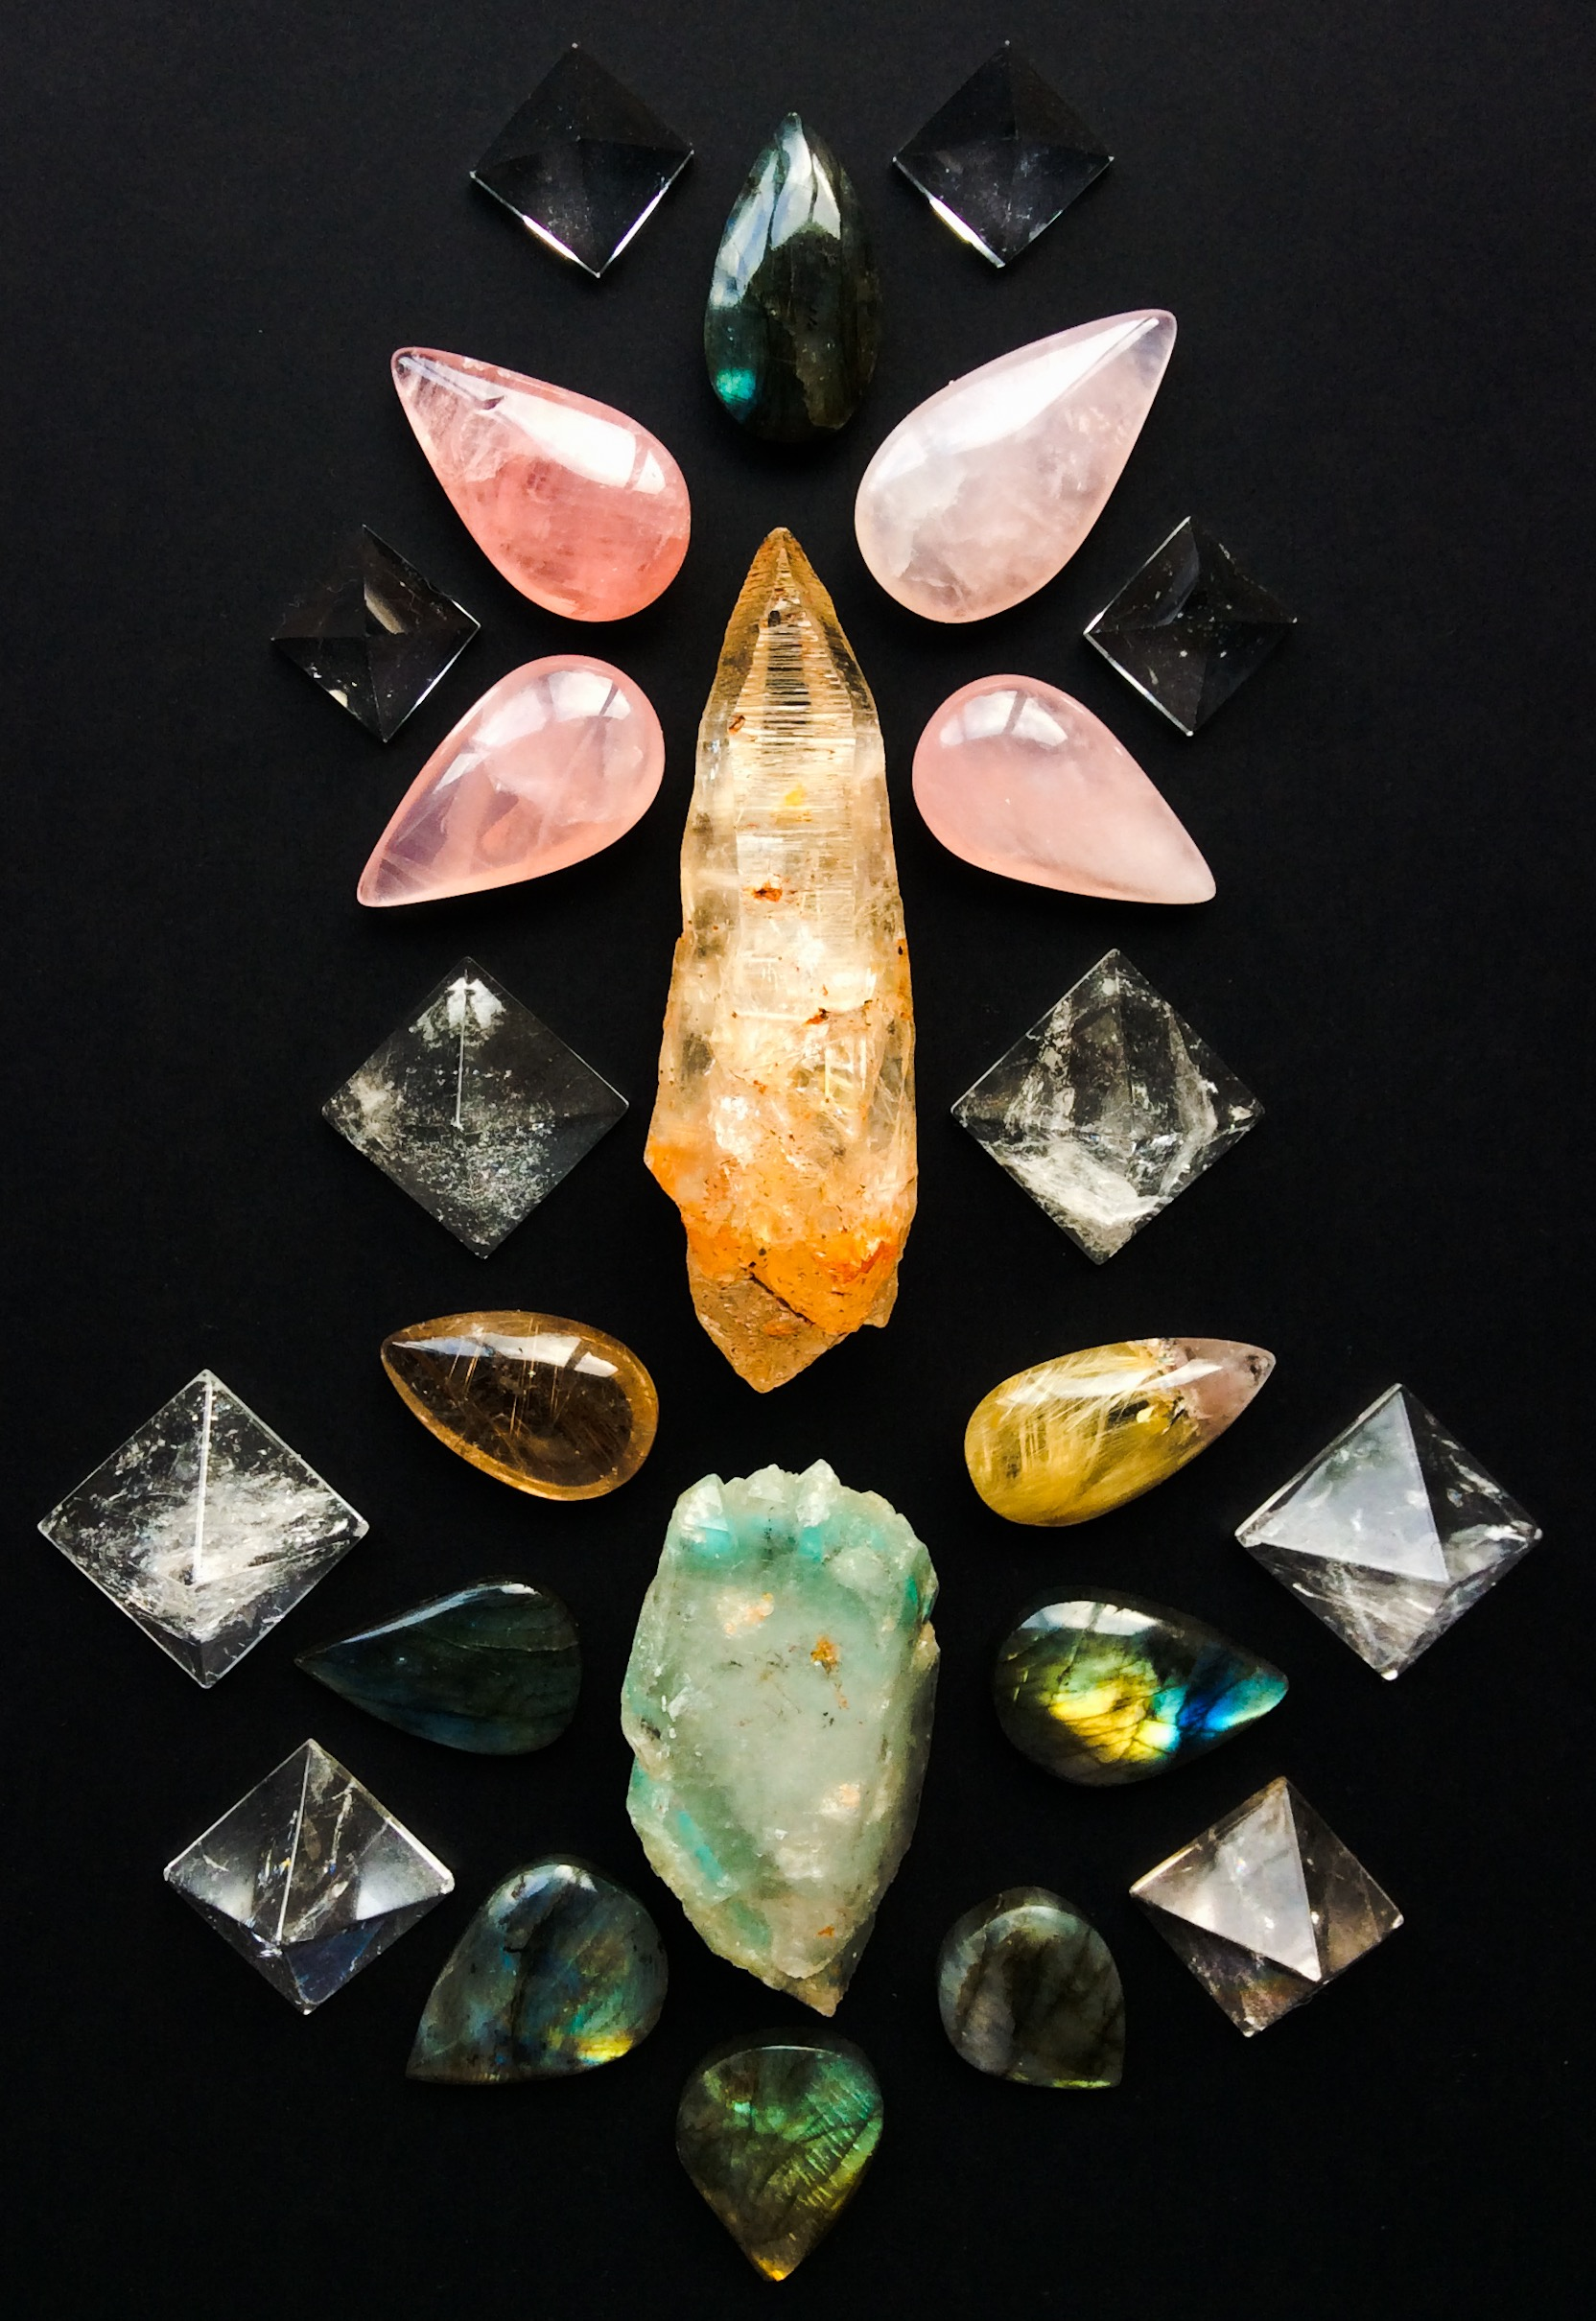 Ajoite in Quartz, Lemurian Quartz with multi-inclusions, Rutile Quartz, Rose Quartz, Quartz and Labradorite